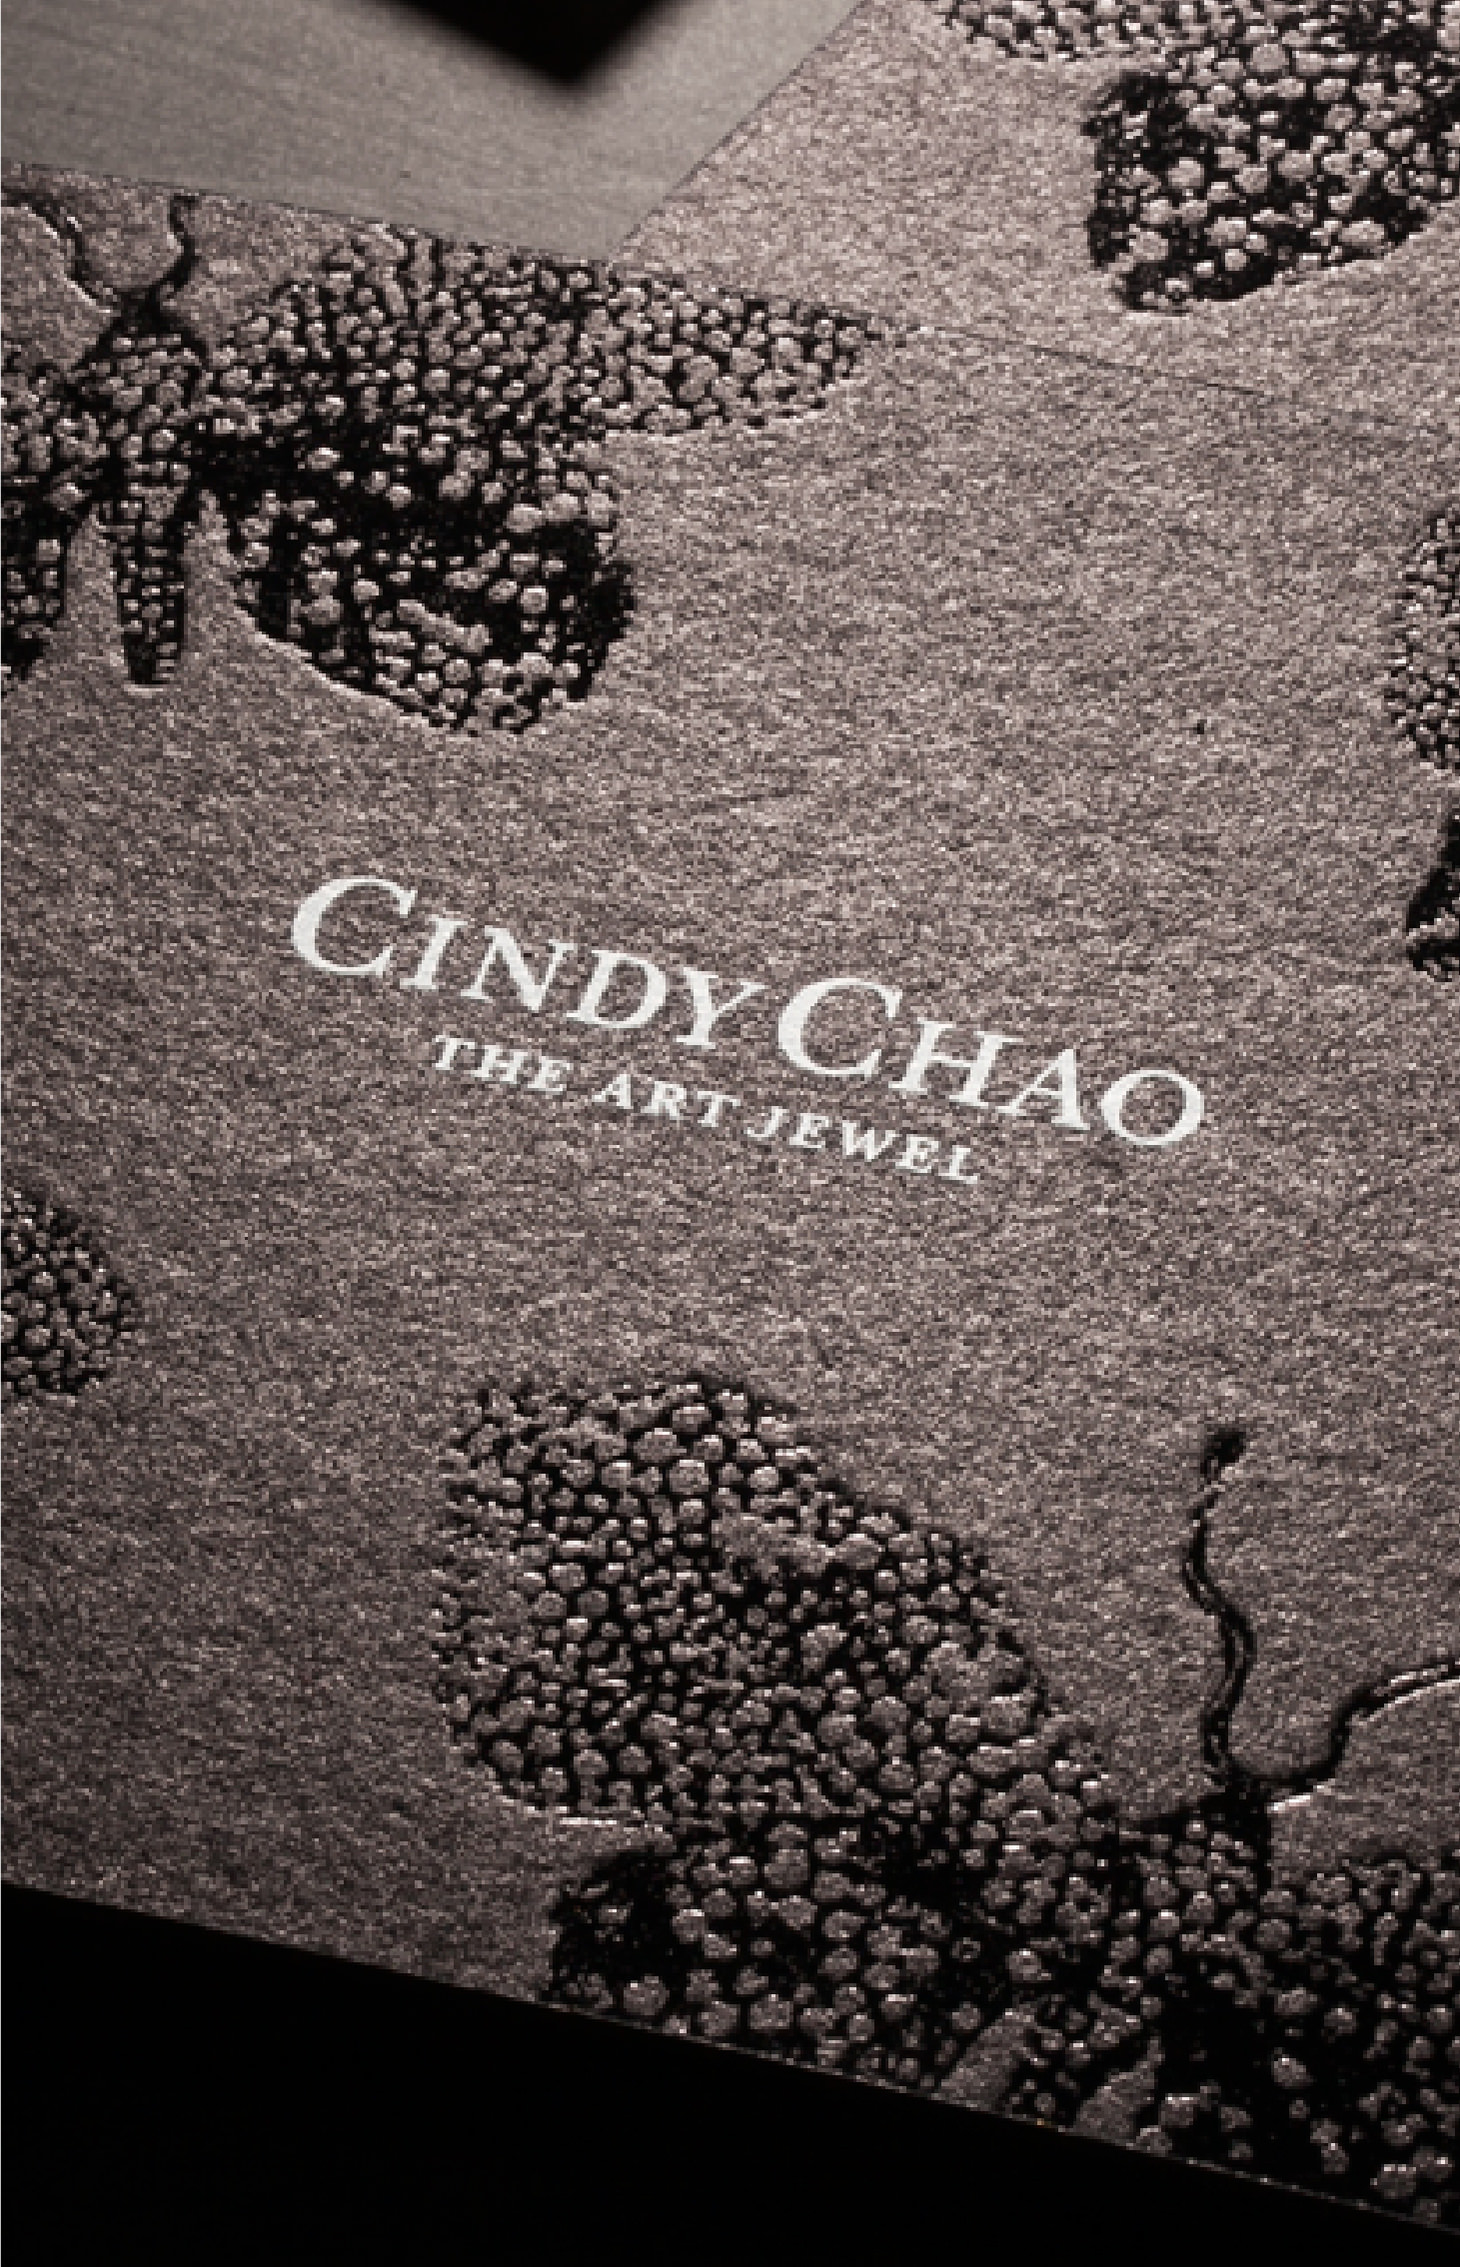 CINDYCHAO_Stationary_04.jpg